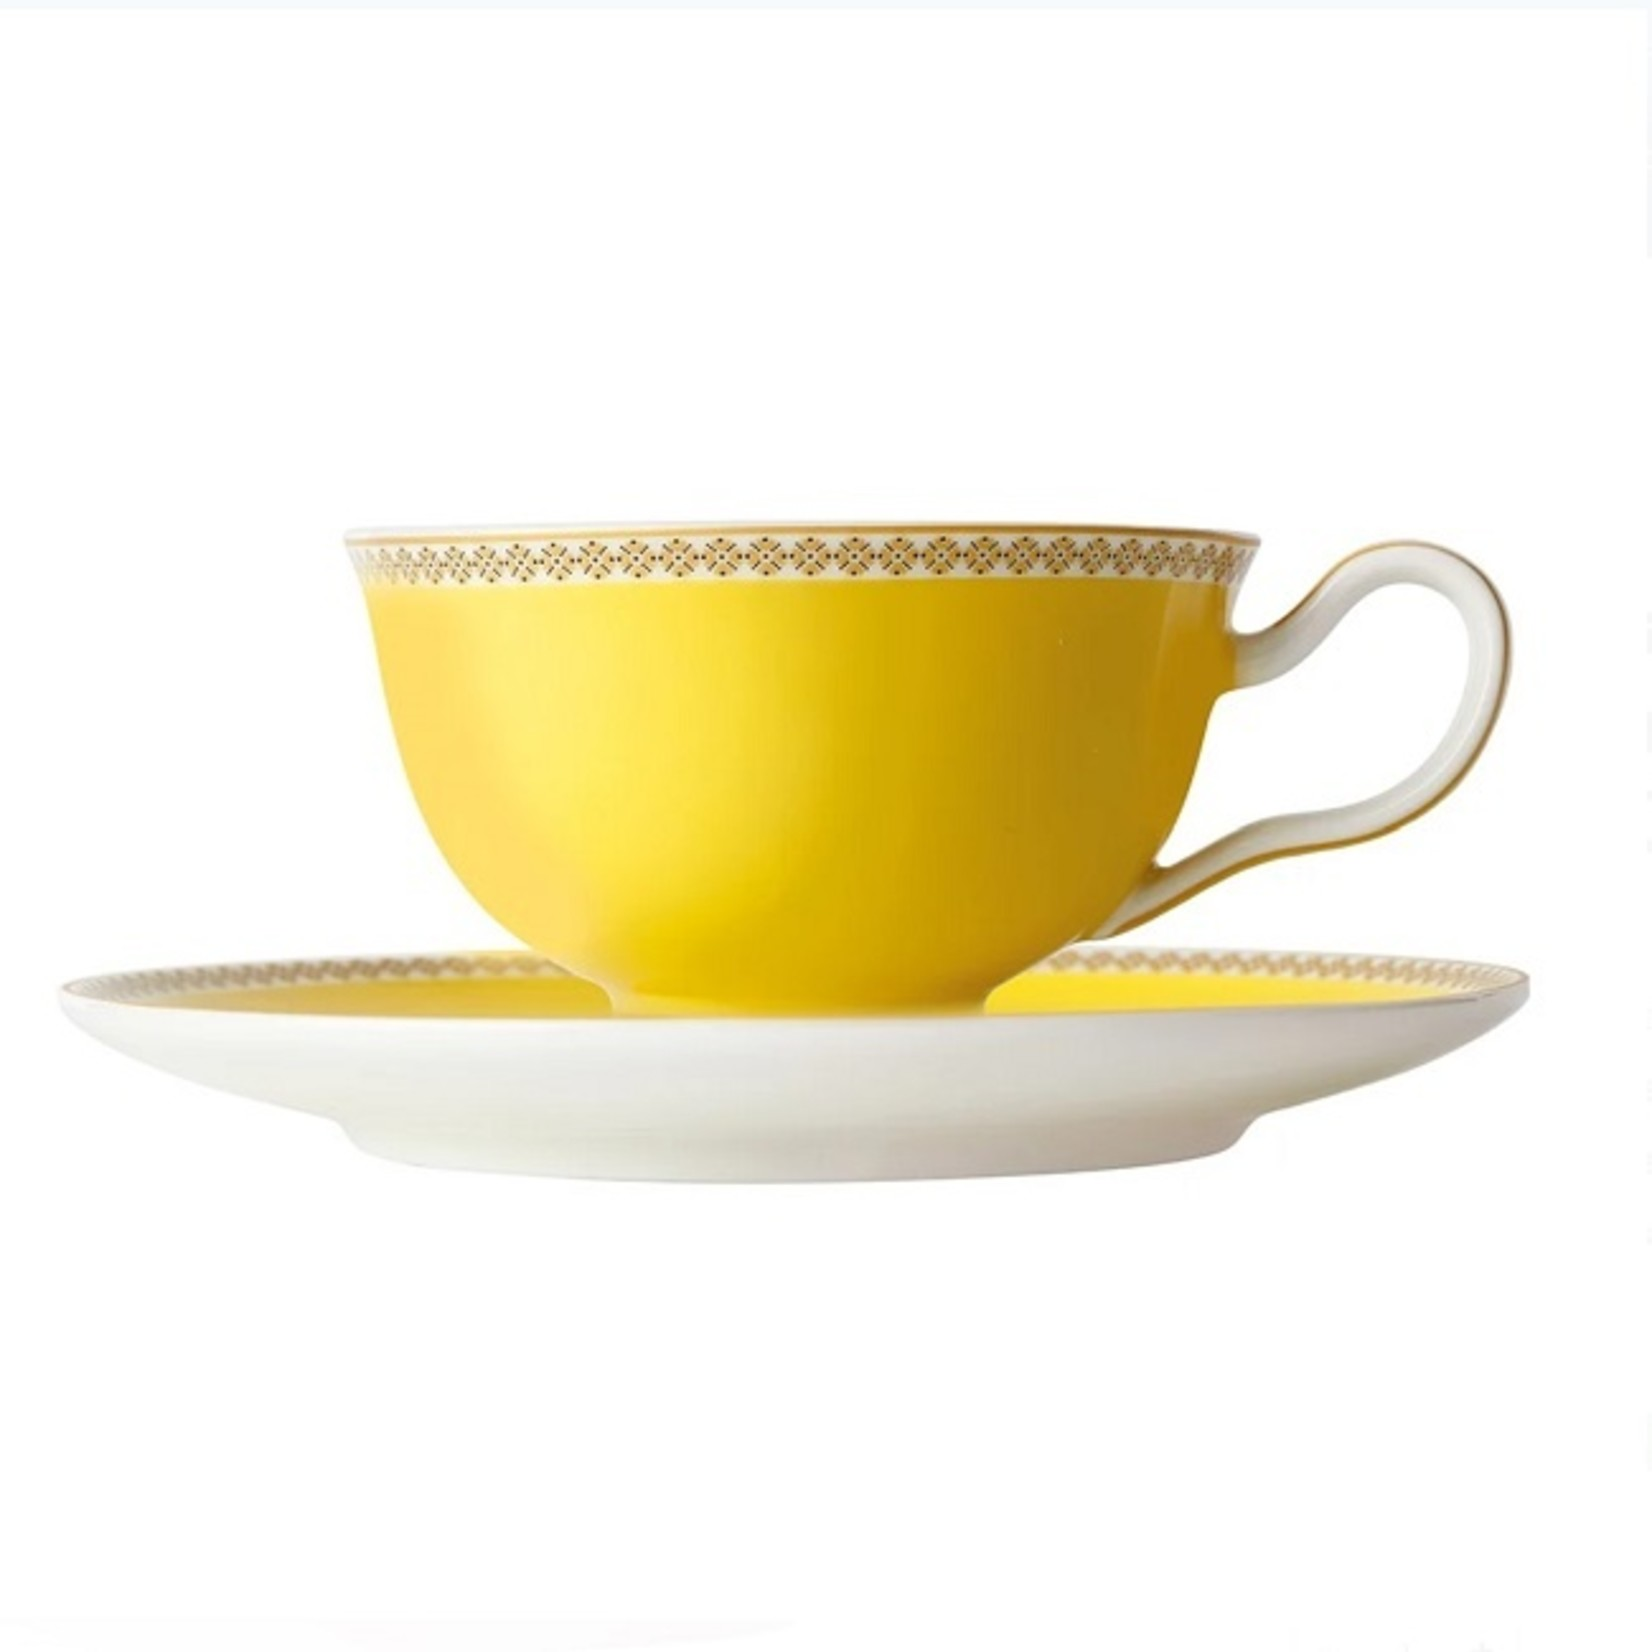 Page&Co. Maxwell & Williams Teas & C's Contessa Cup & Saucer Yellow